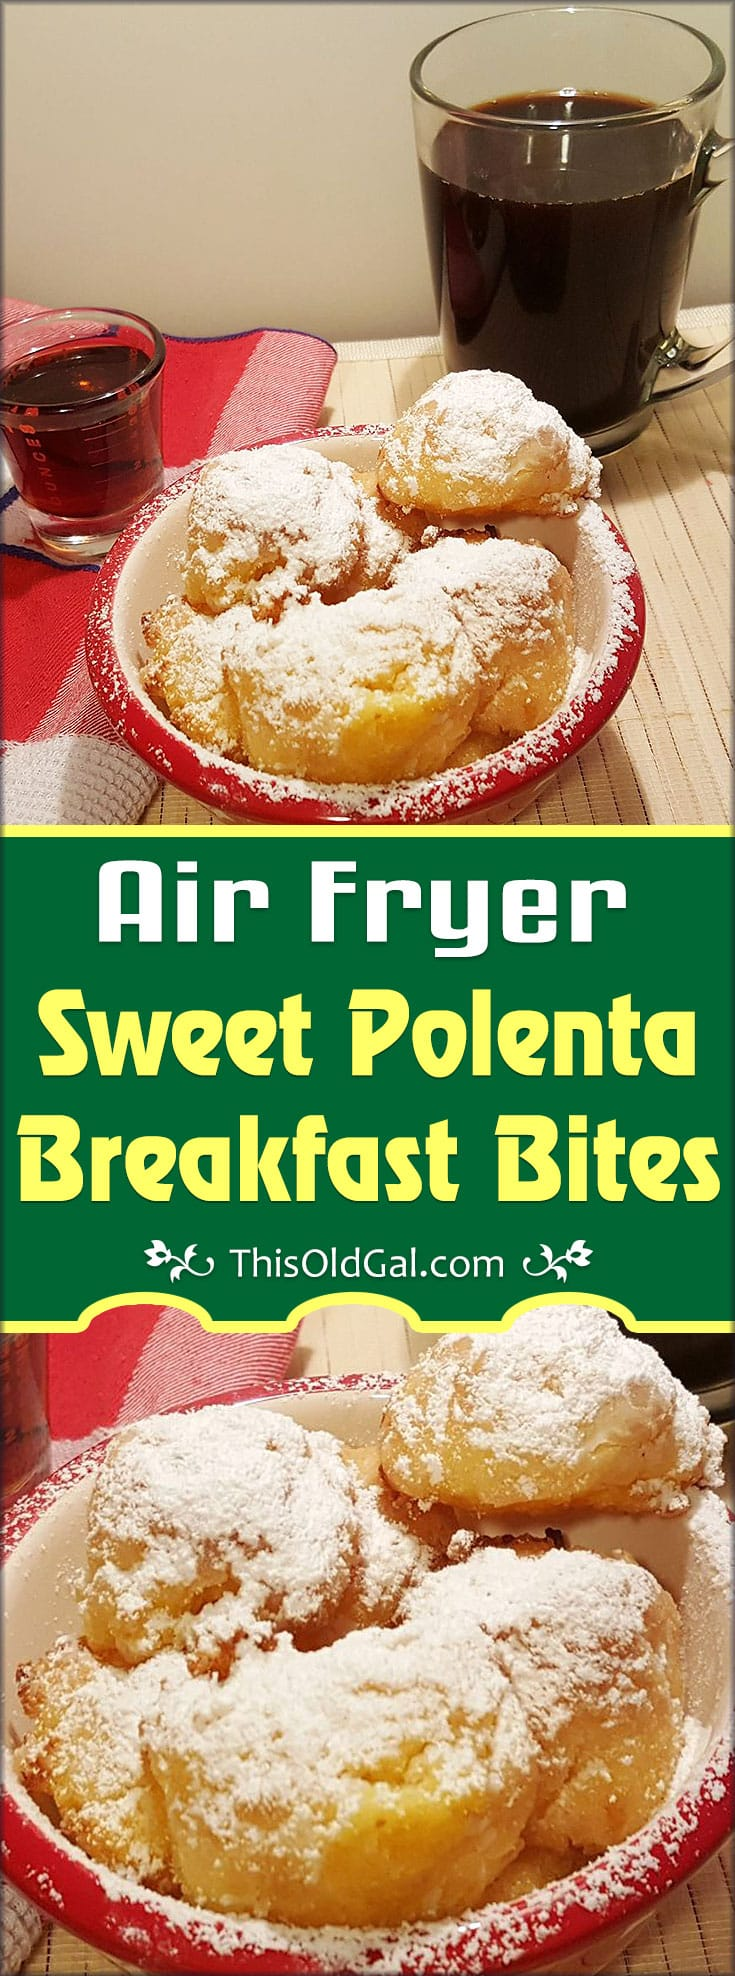 Air Fryer Sweet Polenta Breakfast Bites